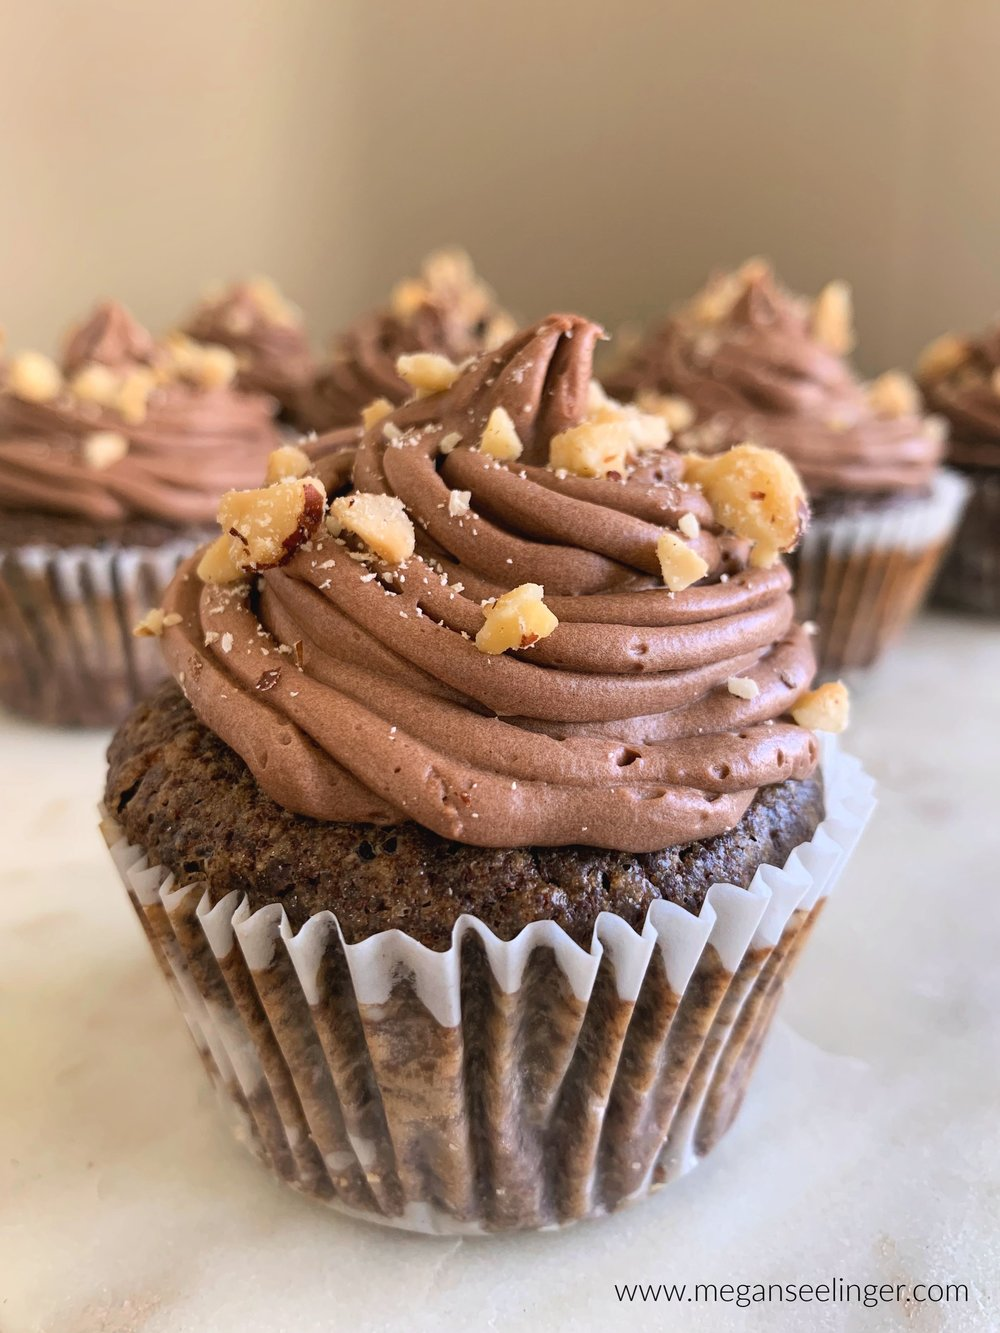 Chocolate Cupcakes With Coconut Hazelnut Frosting